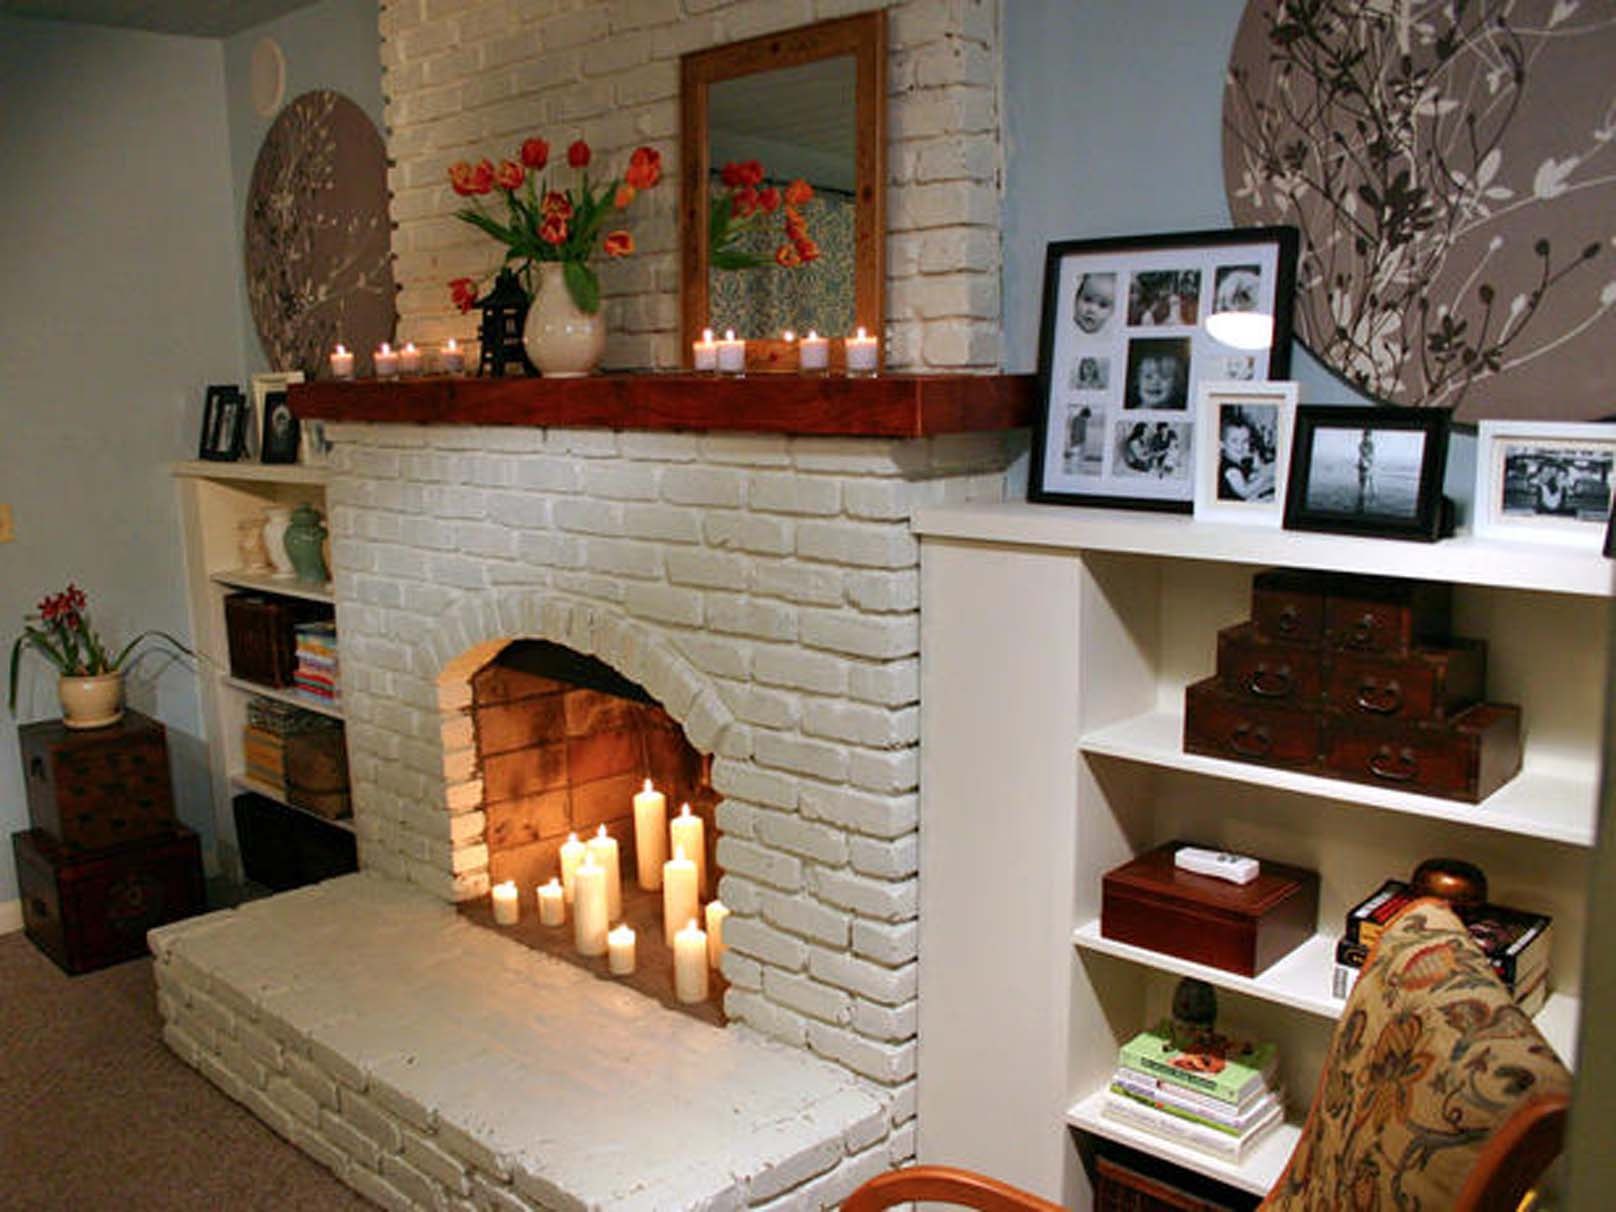 Download how to decorate fireplace monstermathclub.com.